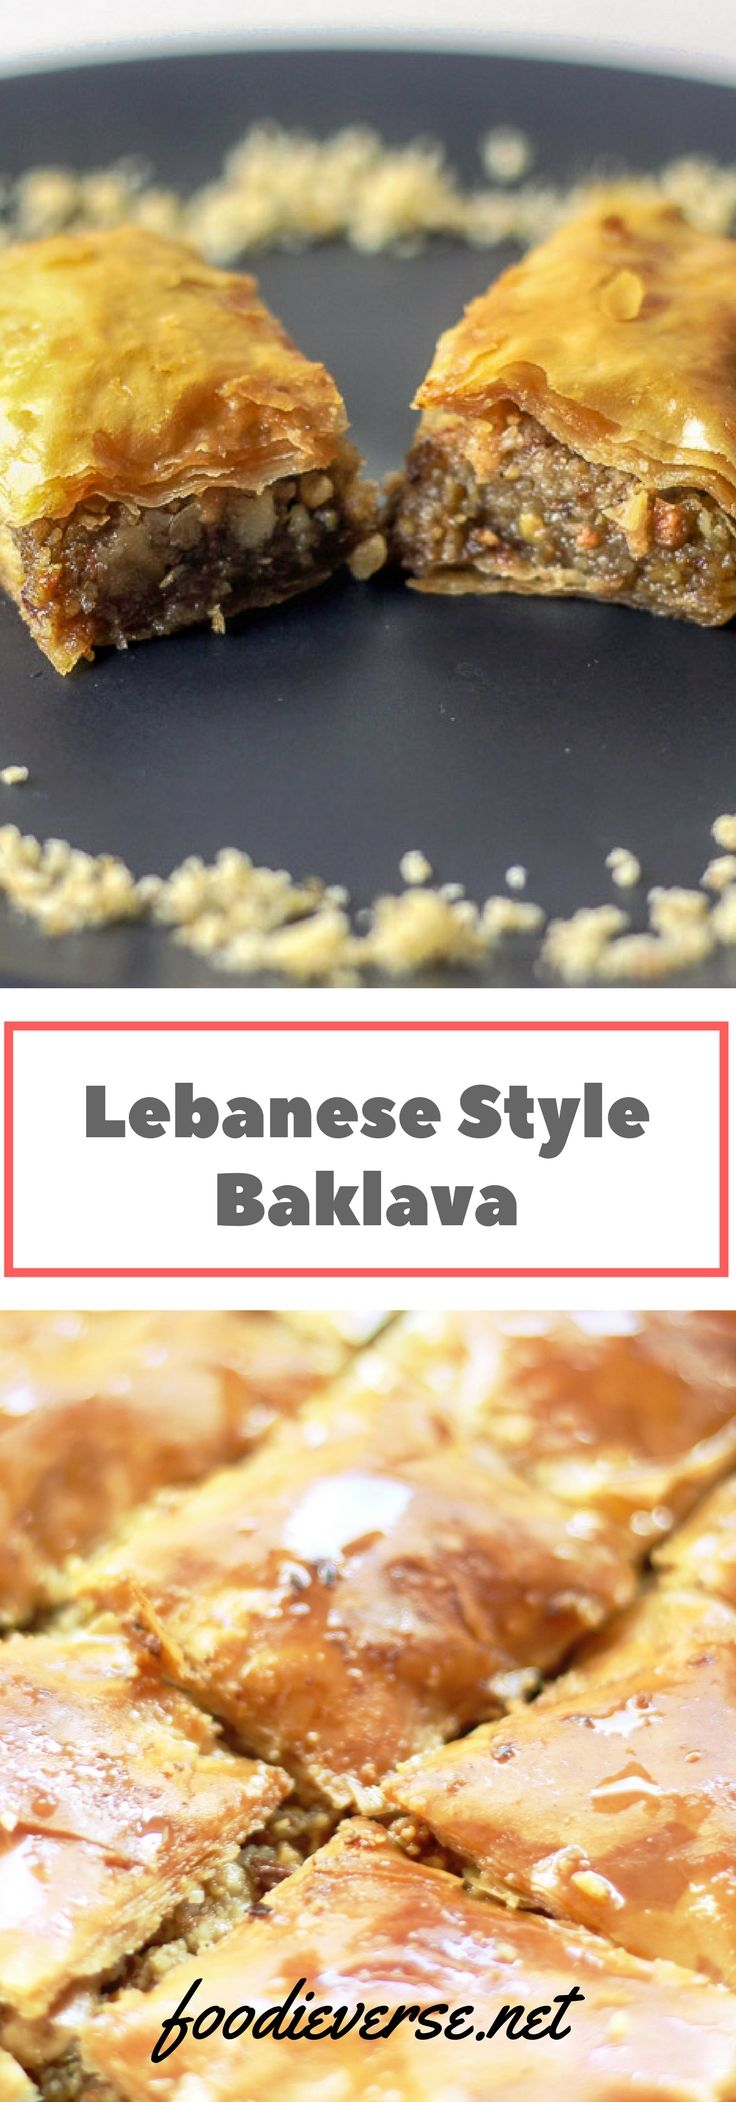 Lebanese style baklava filled with walnuts and pistachios, covered in orange blossom water sugar syrup. This is a quick baklava recipe requiring drizzled butter and ghee instead of brushing each phyllo pastry sheet.